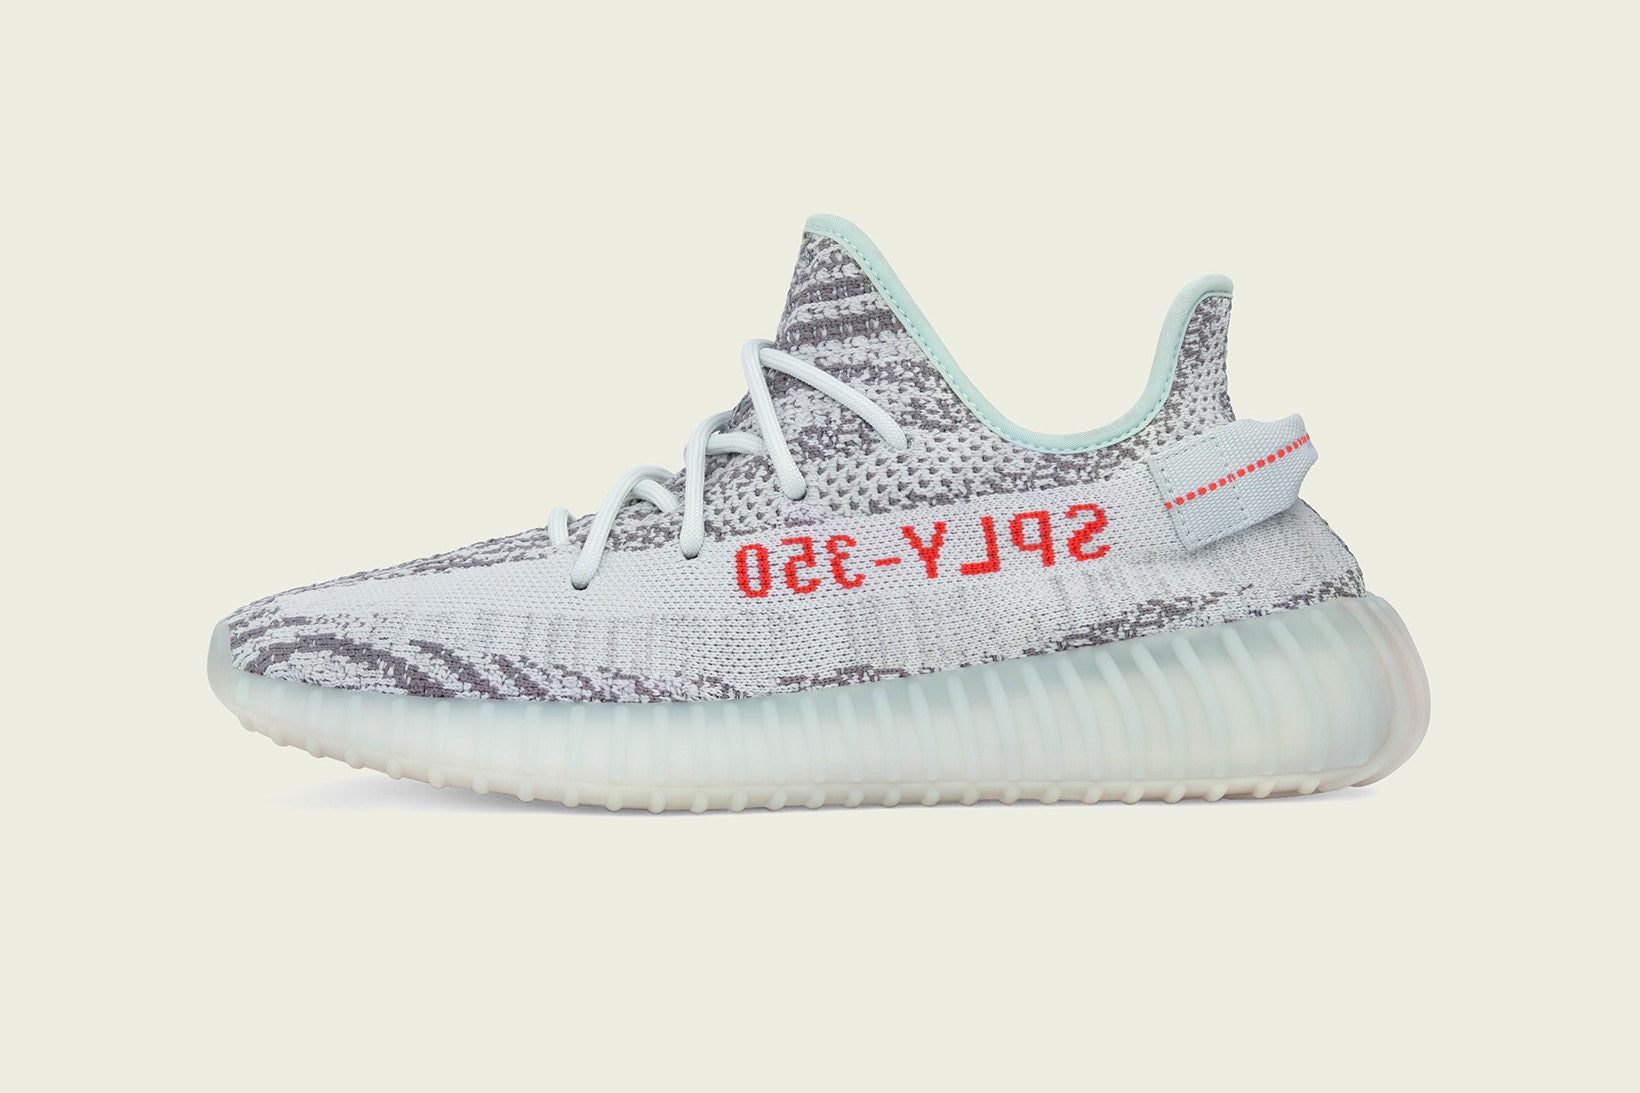 243d64b9c415a Shop Adidas Yeezy Shoes by Kanye West in Detroit